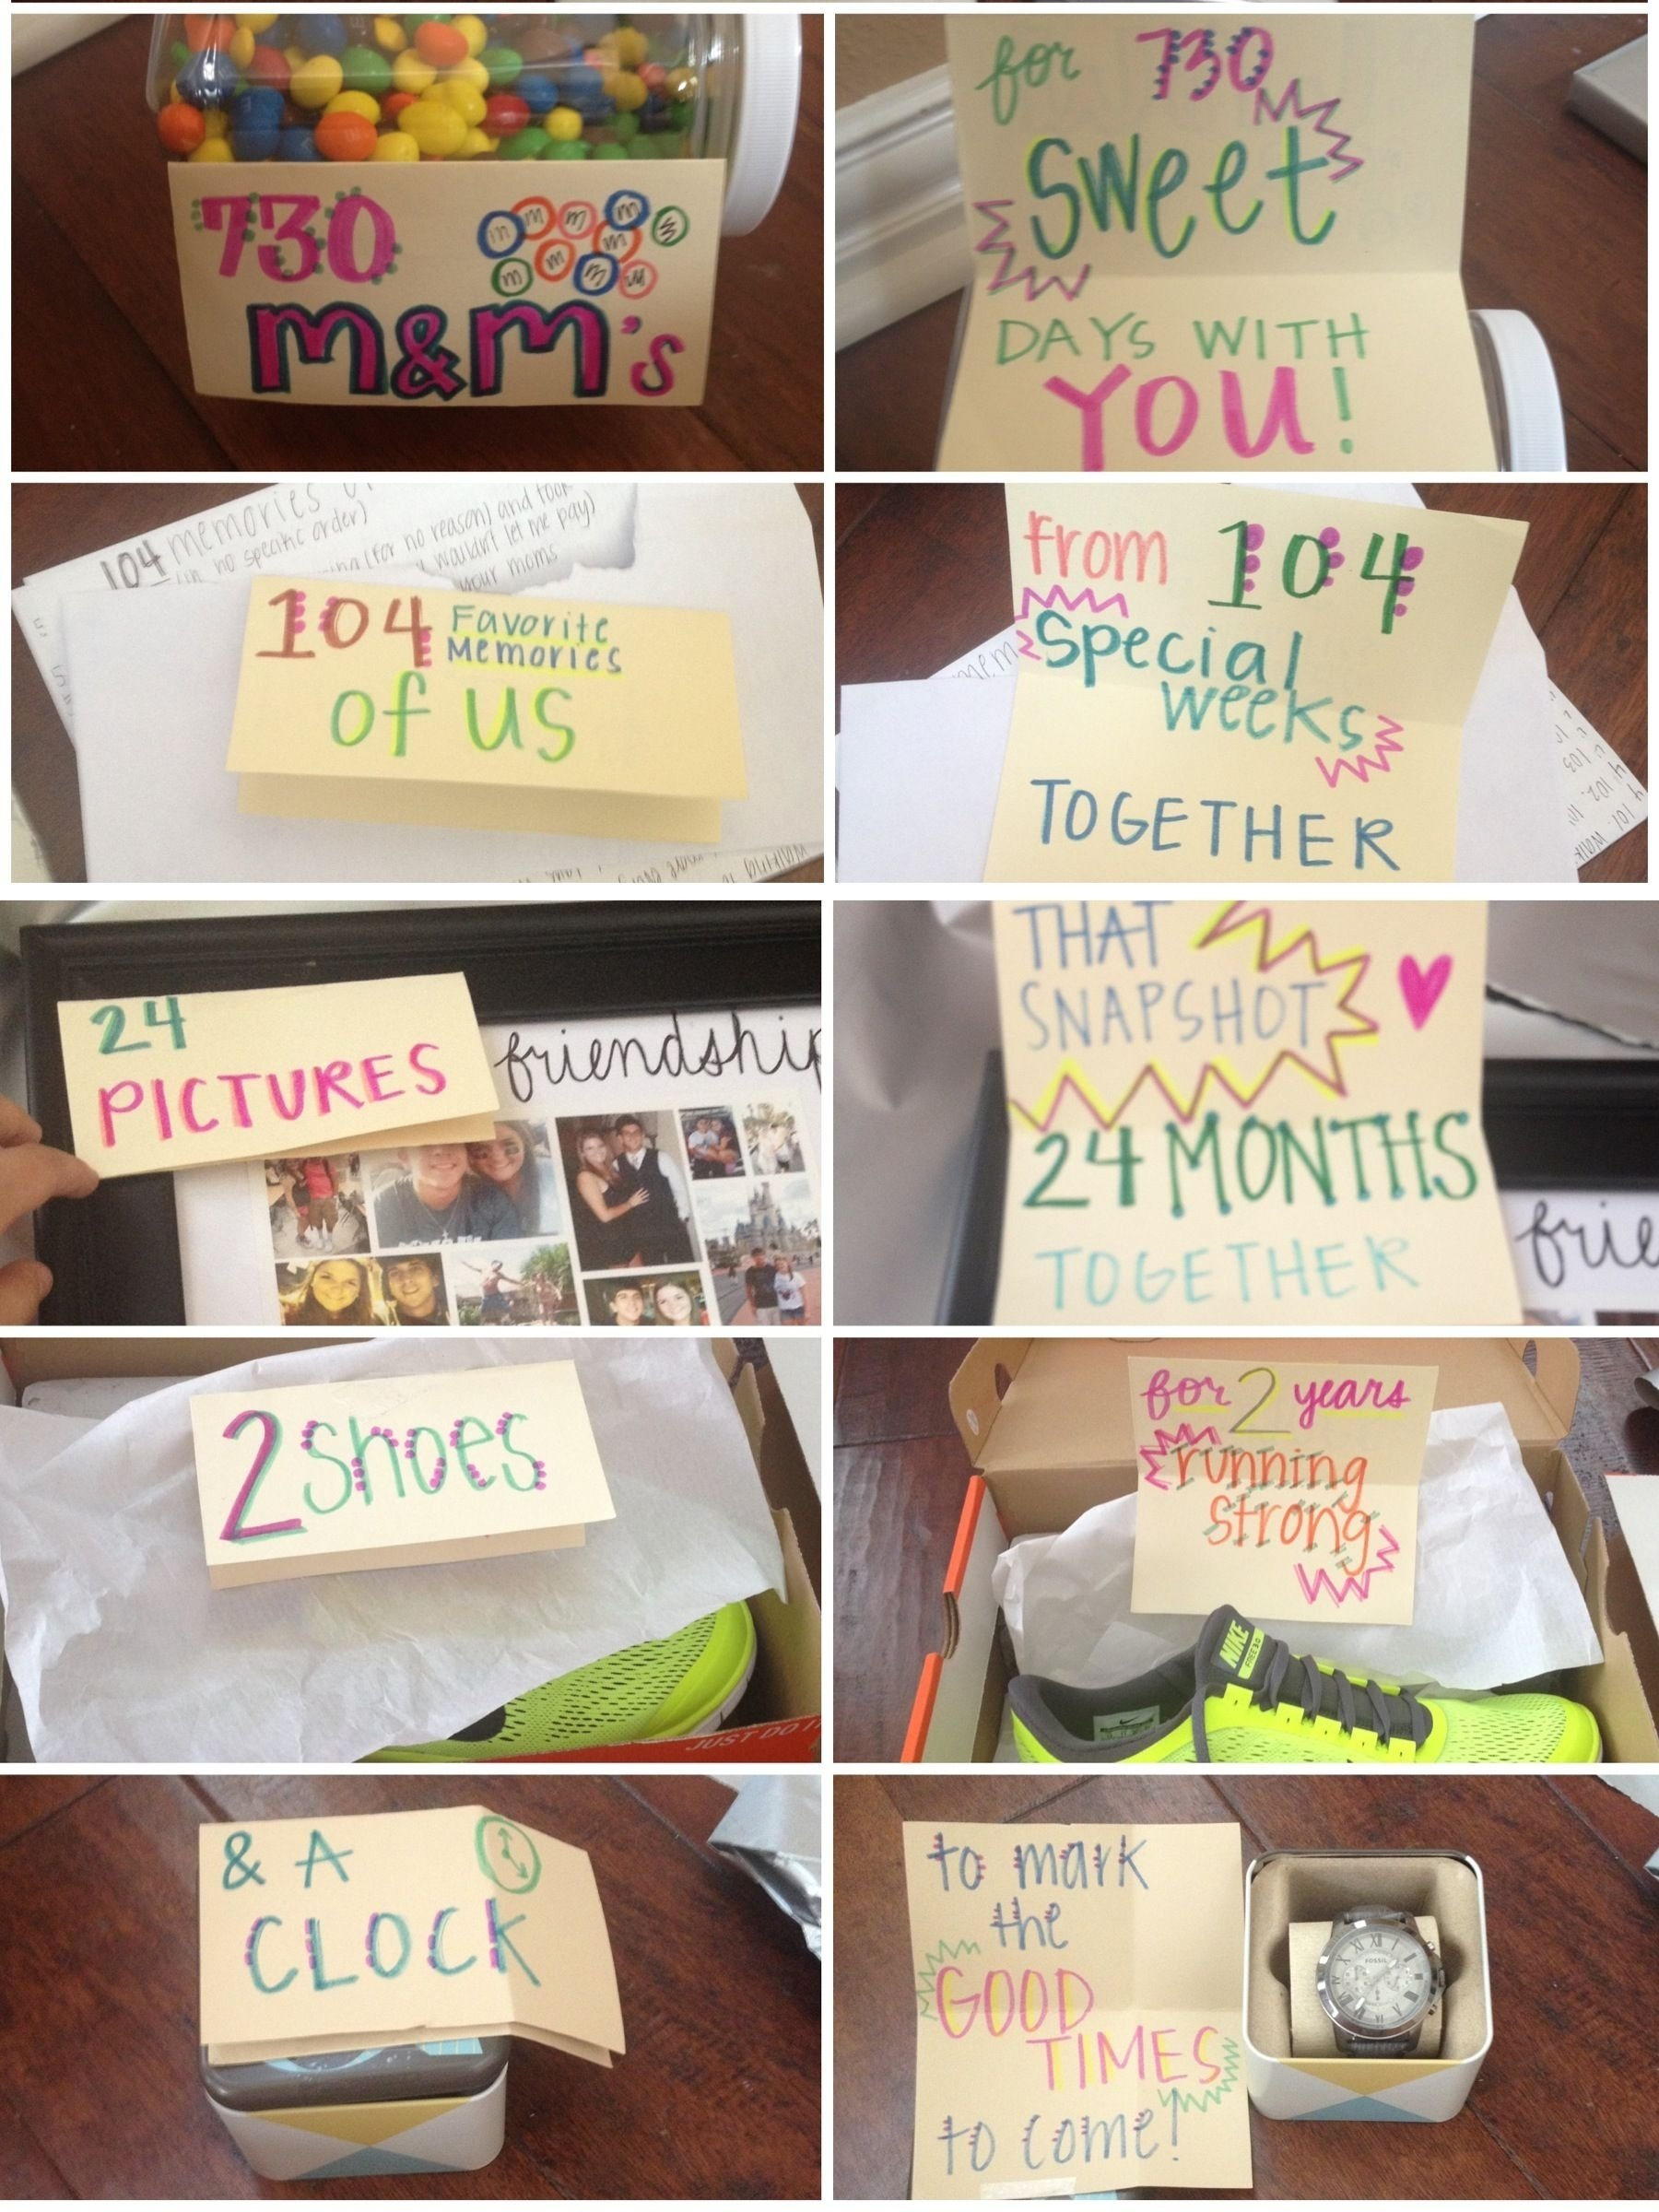 10 Stylish 2 Year Anniversary Ideas For Boyfriend even though the two years has passed i could use this for 11